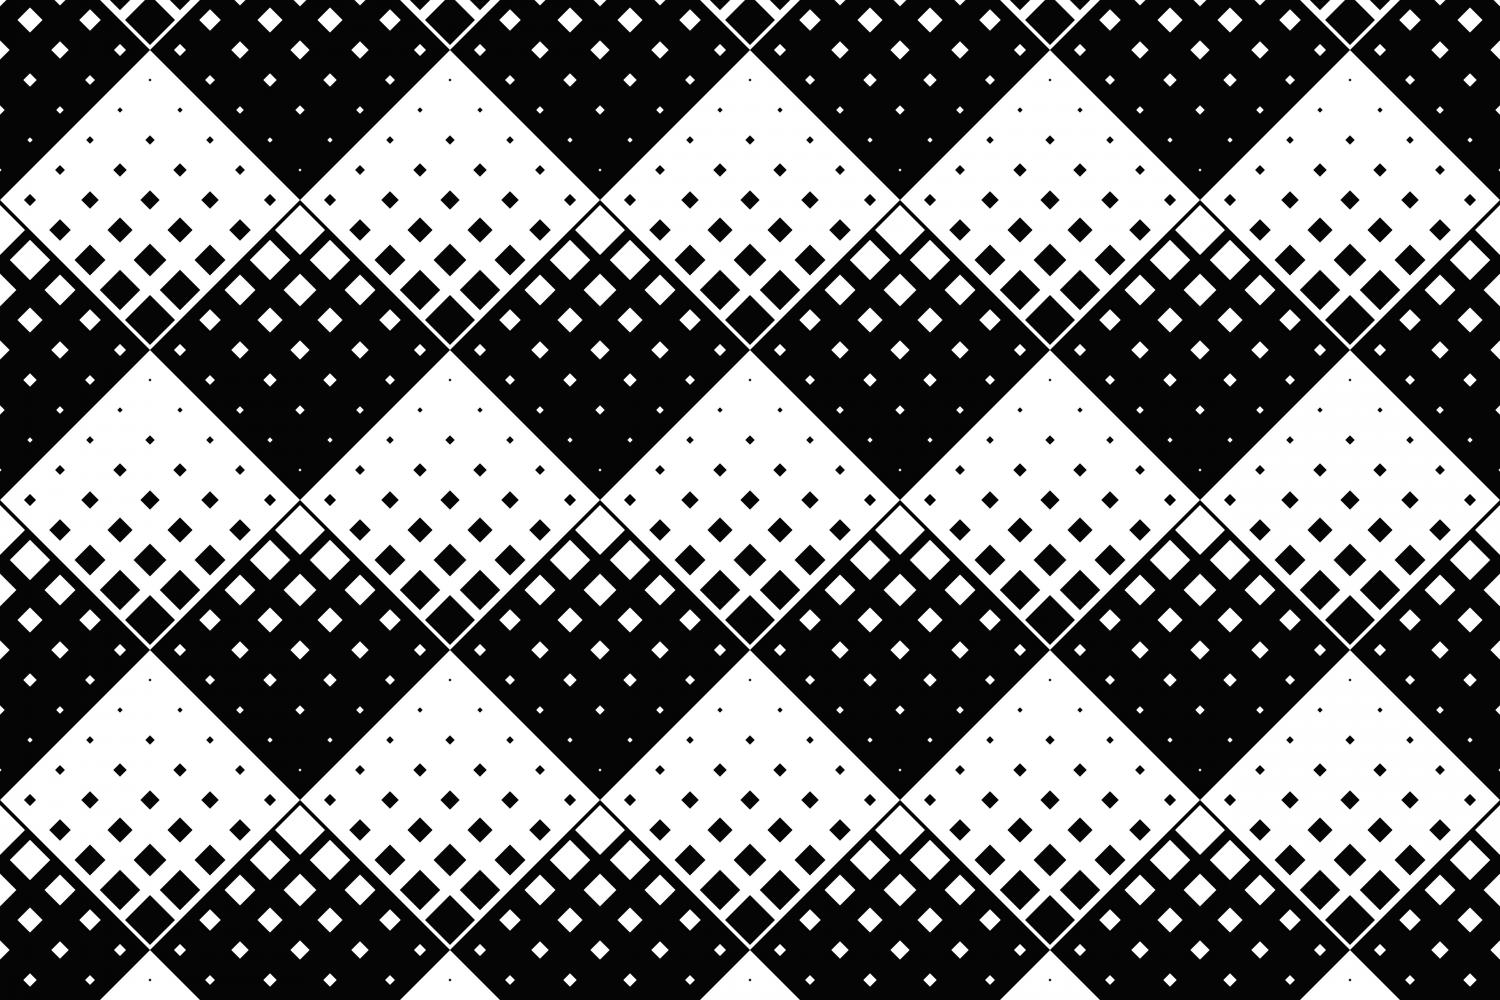 24 Seamless Square Patterns example image 18